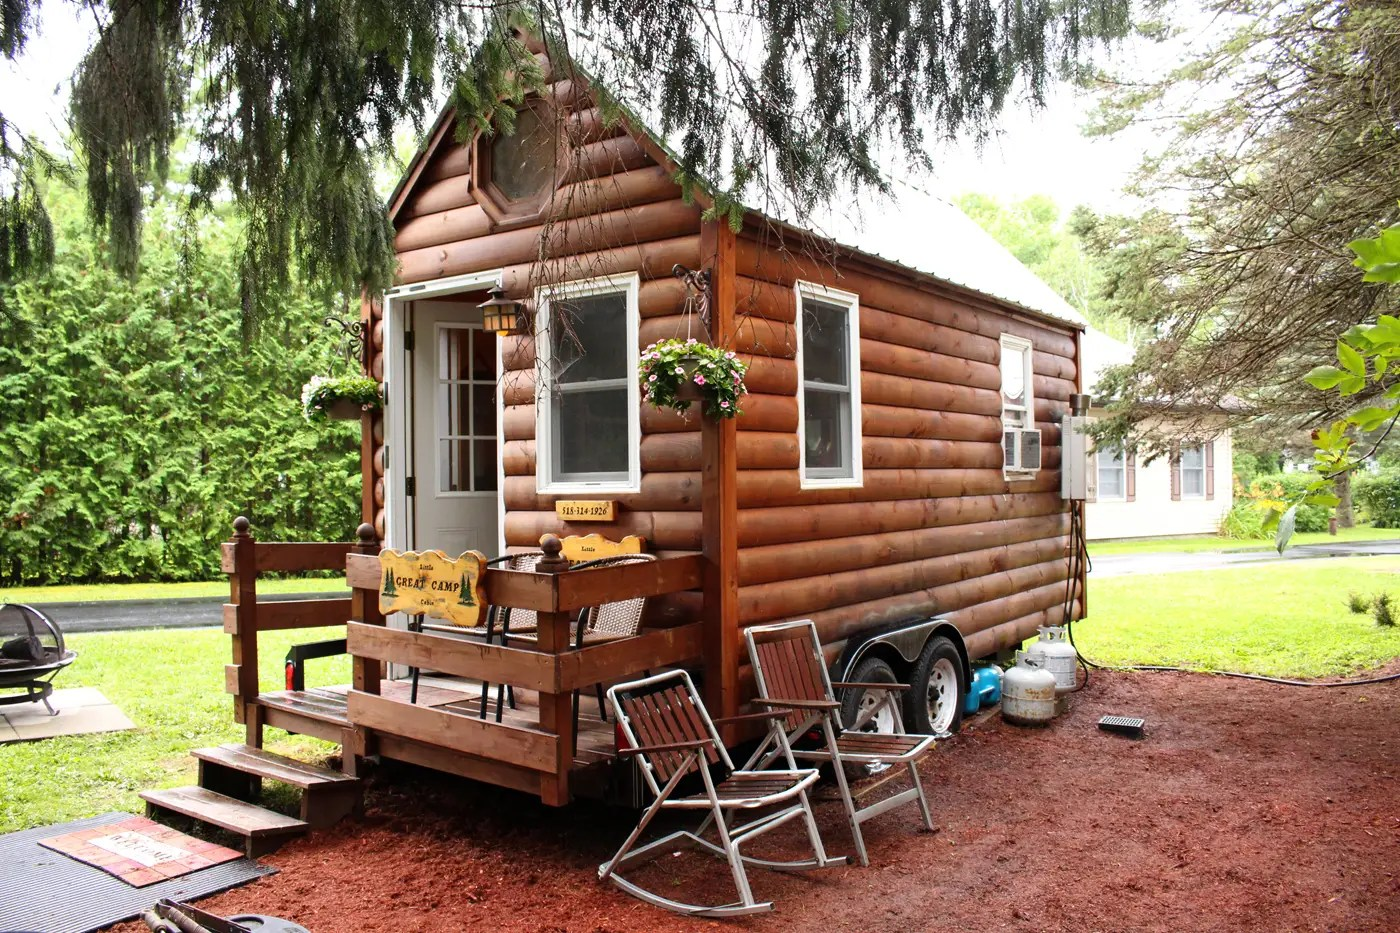 Contemporary Living In A Tiny House Plattsburgh We Survived Inside Ideas